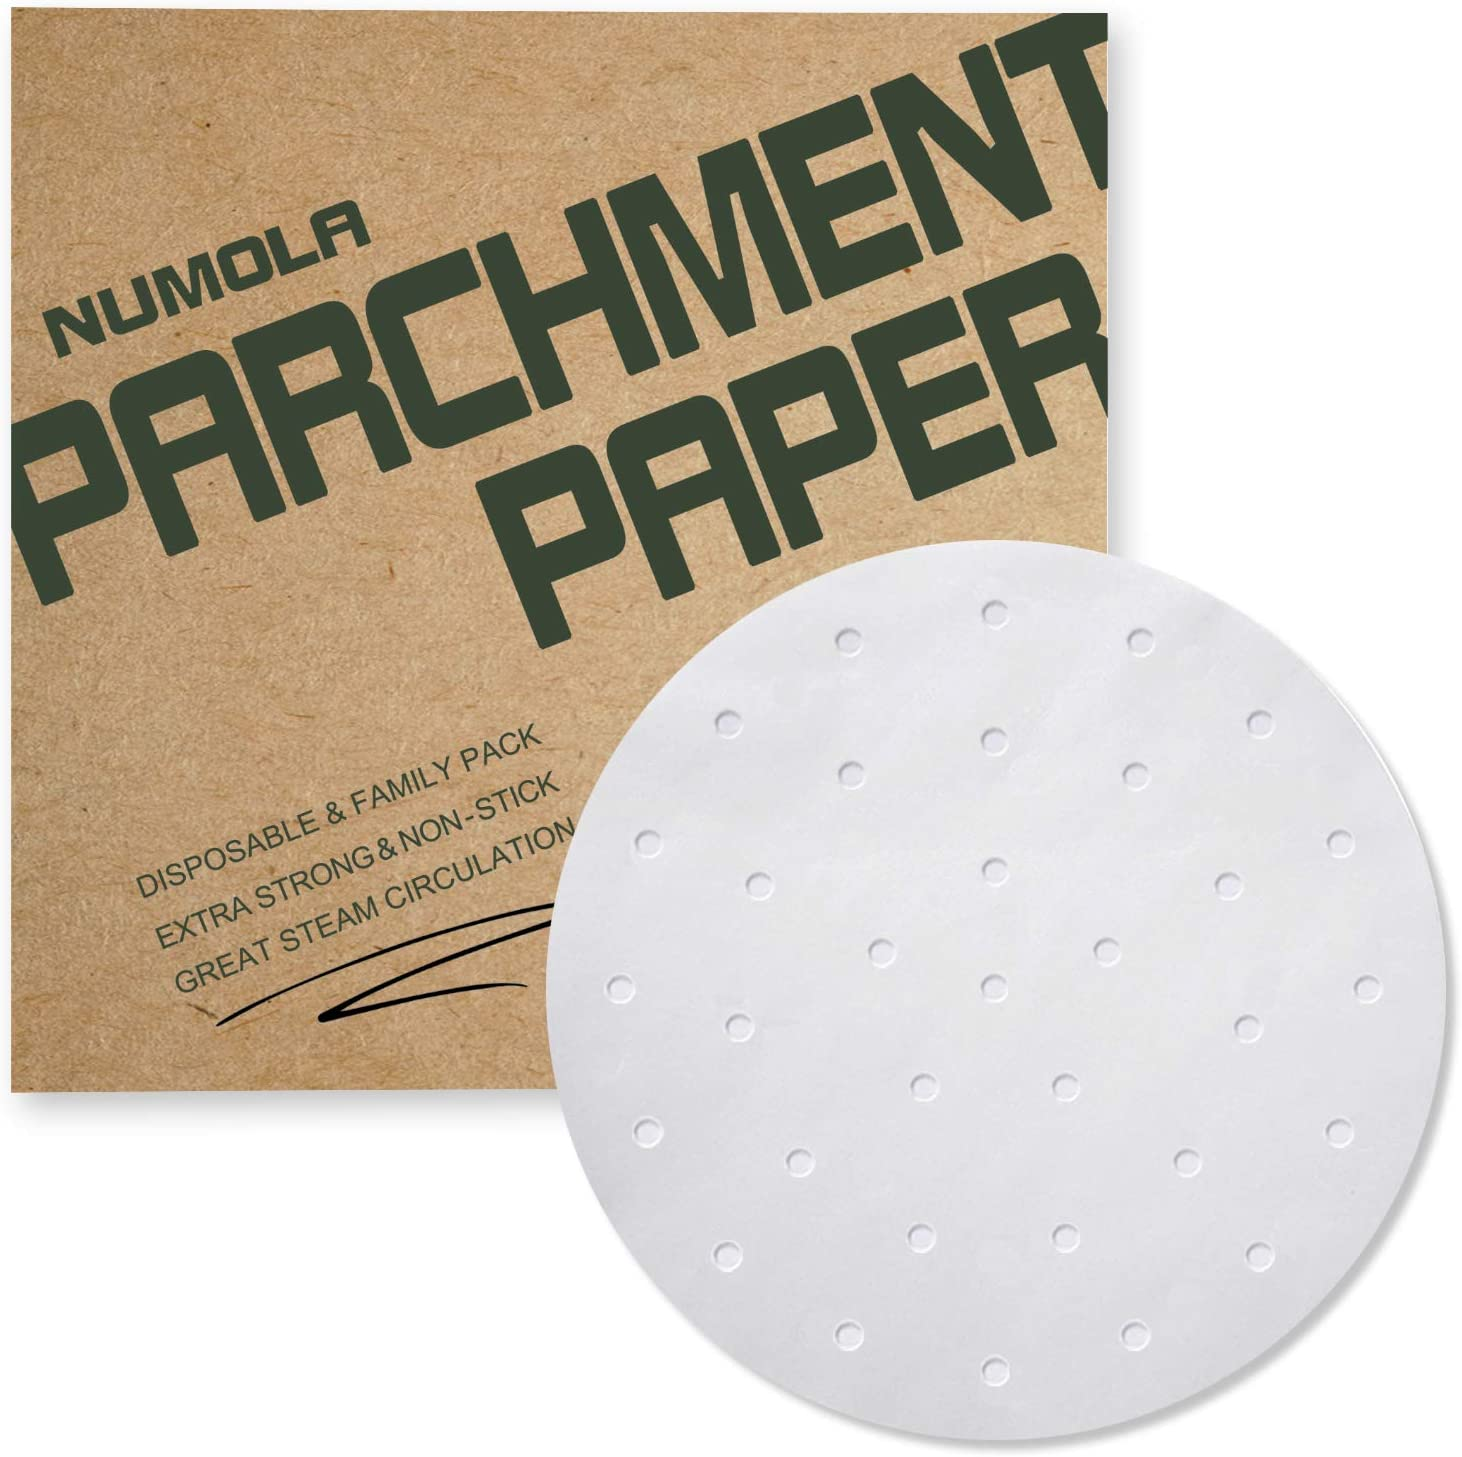 Numola 7 Inch Air Fryer Liners, 100 PCS Perforated Parchment Paper Compatible with COSORI, GoWISE USA, Instant Vortex, Ninja, Ultrean, Chefman, Innsky, Dash and More 3.4-3.7qt Air Fryers